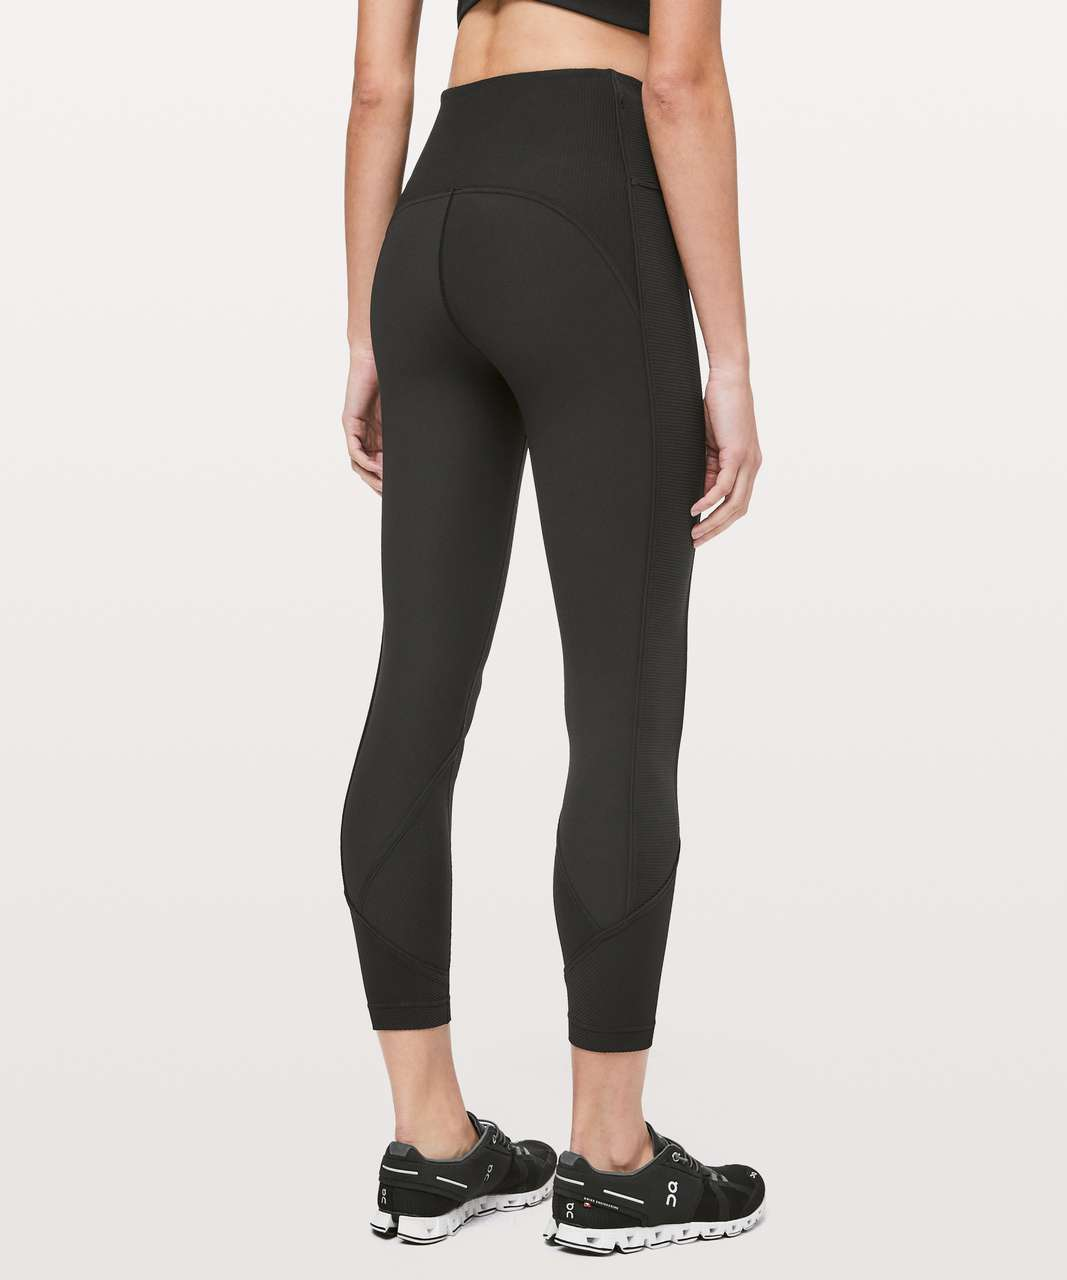 "Lululemon Daily Lineup 7/8 Tight *25"" - Black"